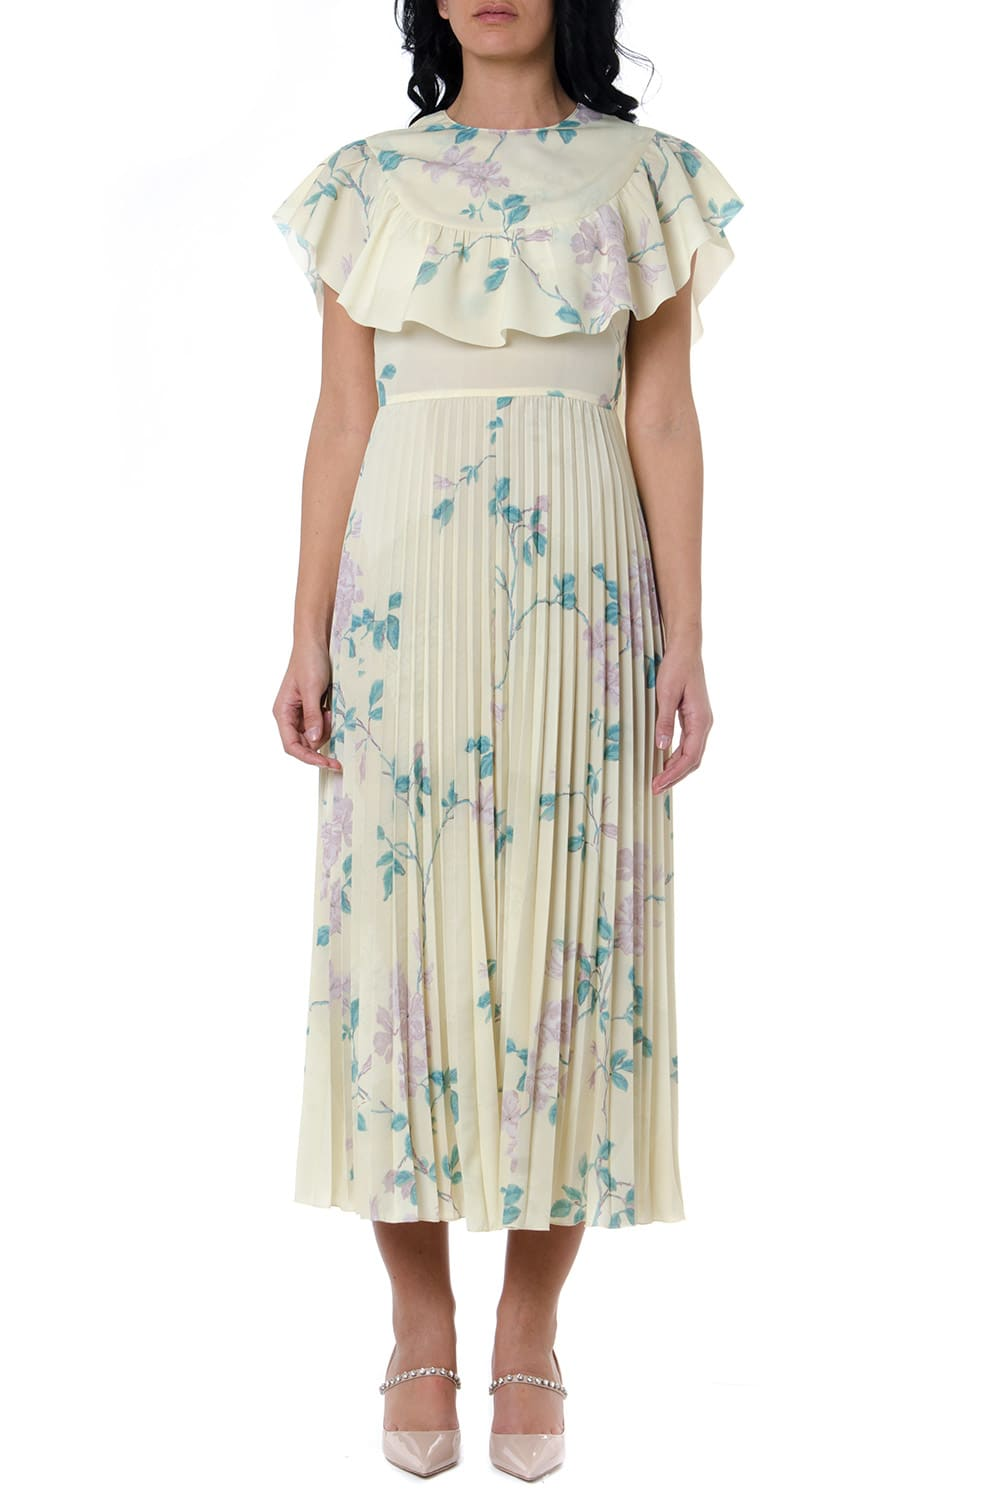 Buy RED Valentino Crepe De Chine Floral Print Dress online, shop RED Valentino with free shipping